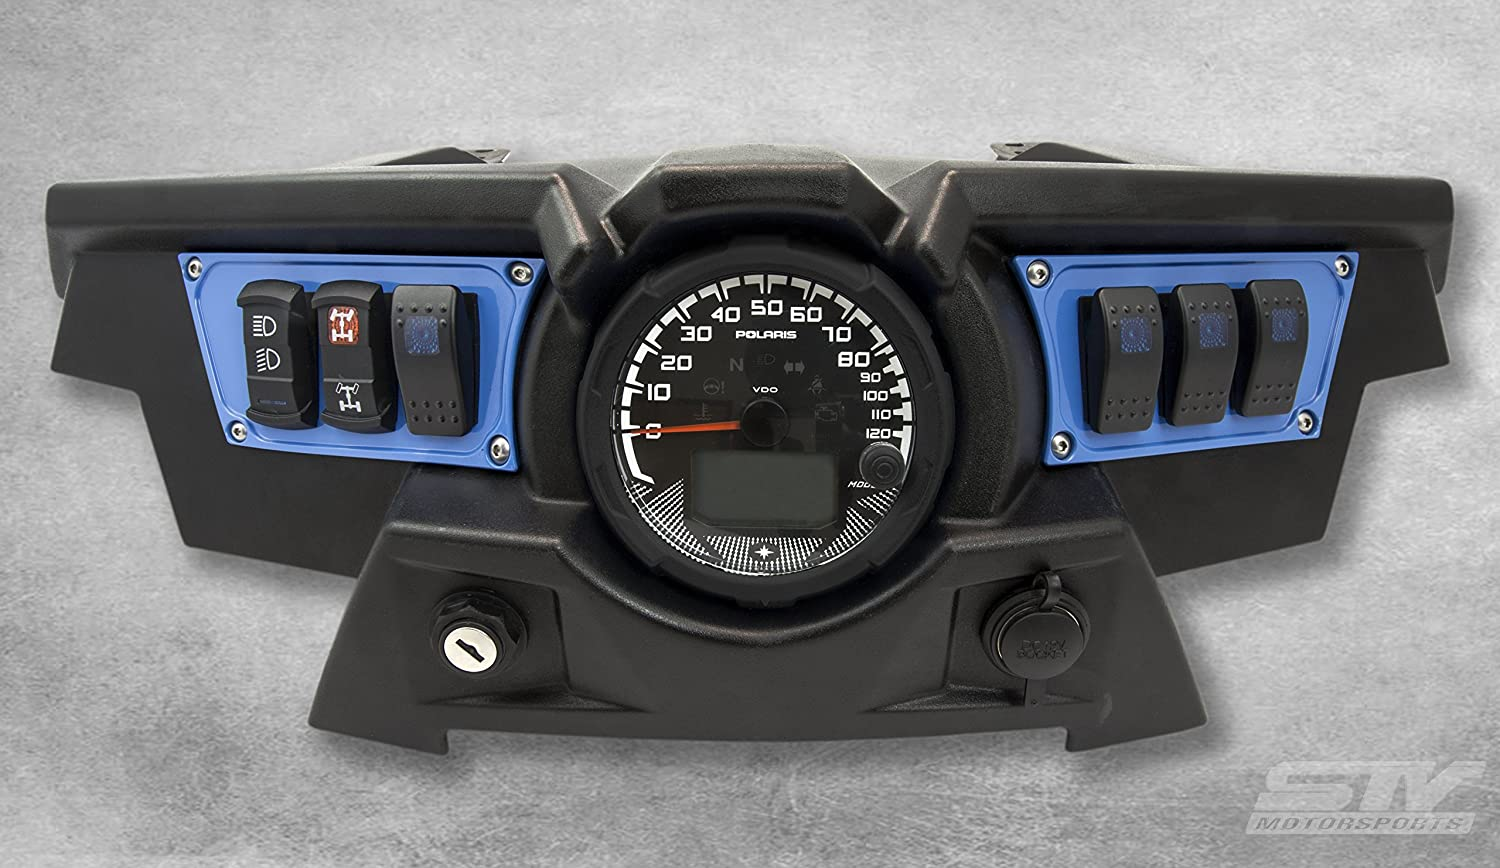 2015 Polaris RZR XP 1000 Custom Blue Dash Plate 4 Free Laser Etched Switches